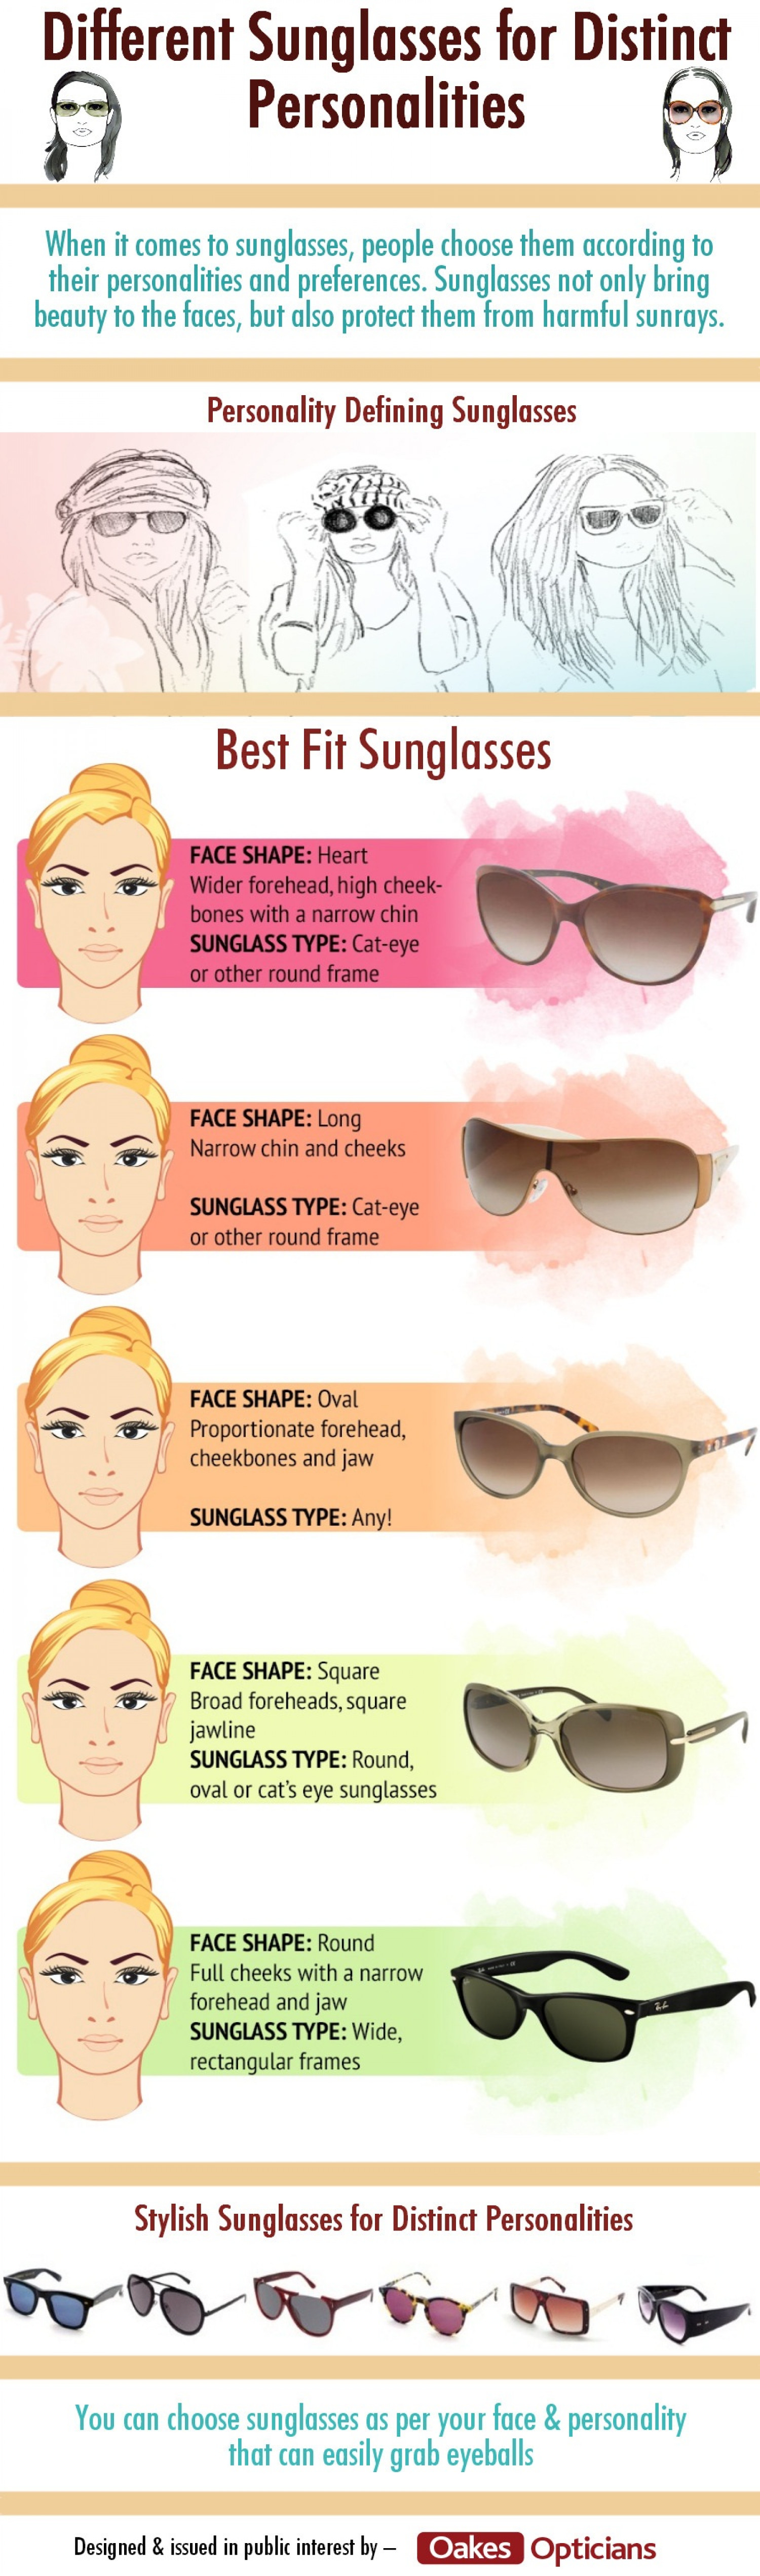 Different Sunglasses for Distinct Personalities Infographic